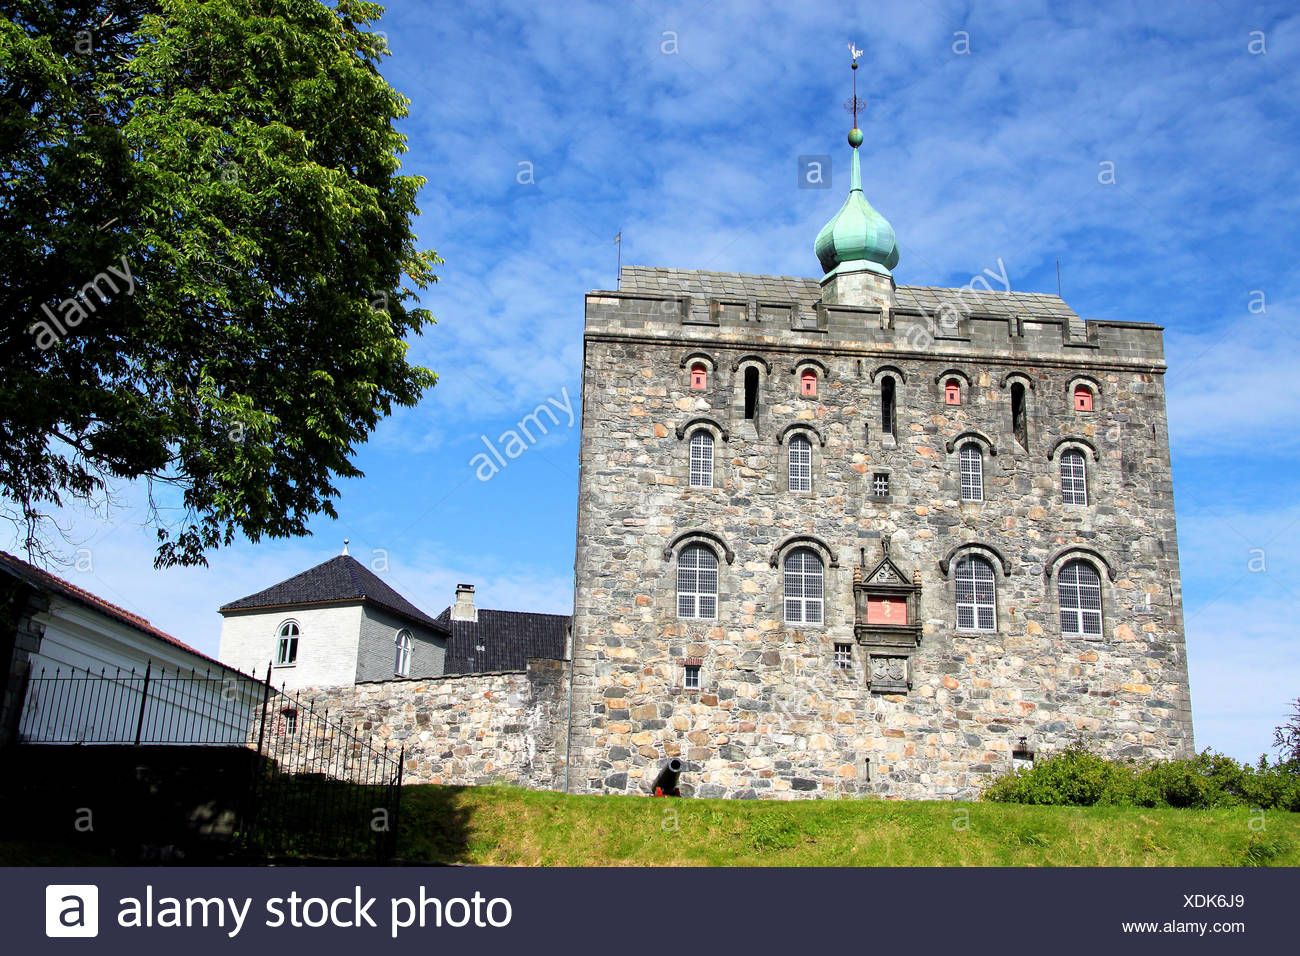 Sprossenfenster Wiki Bergenhus Fortress Stock Photo 283778721 Alamy